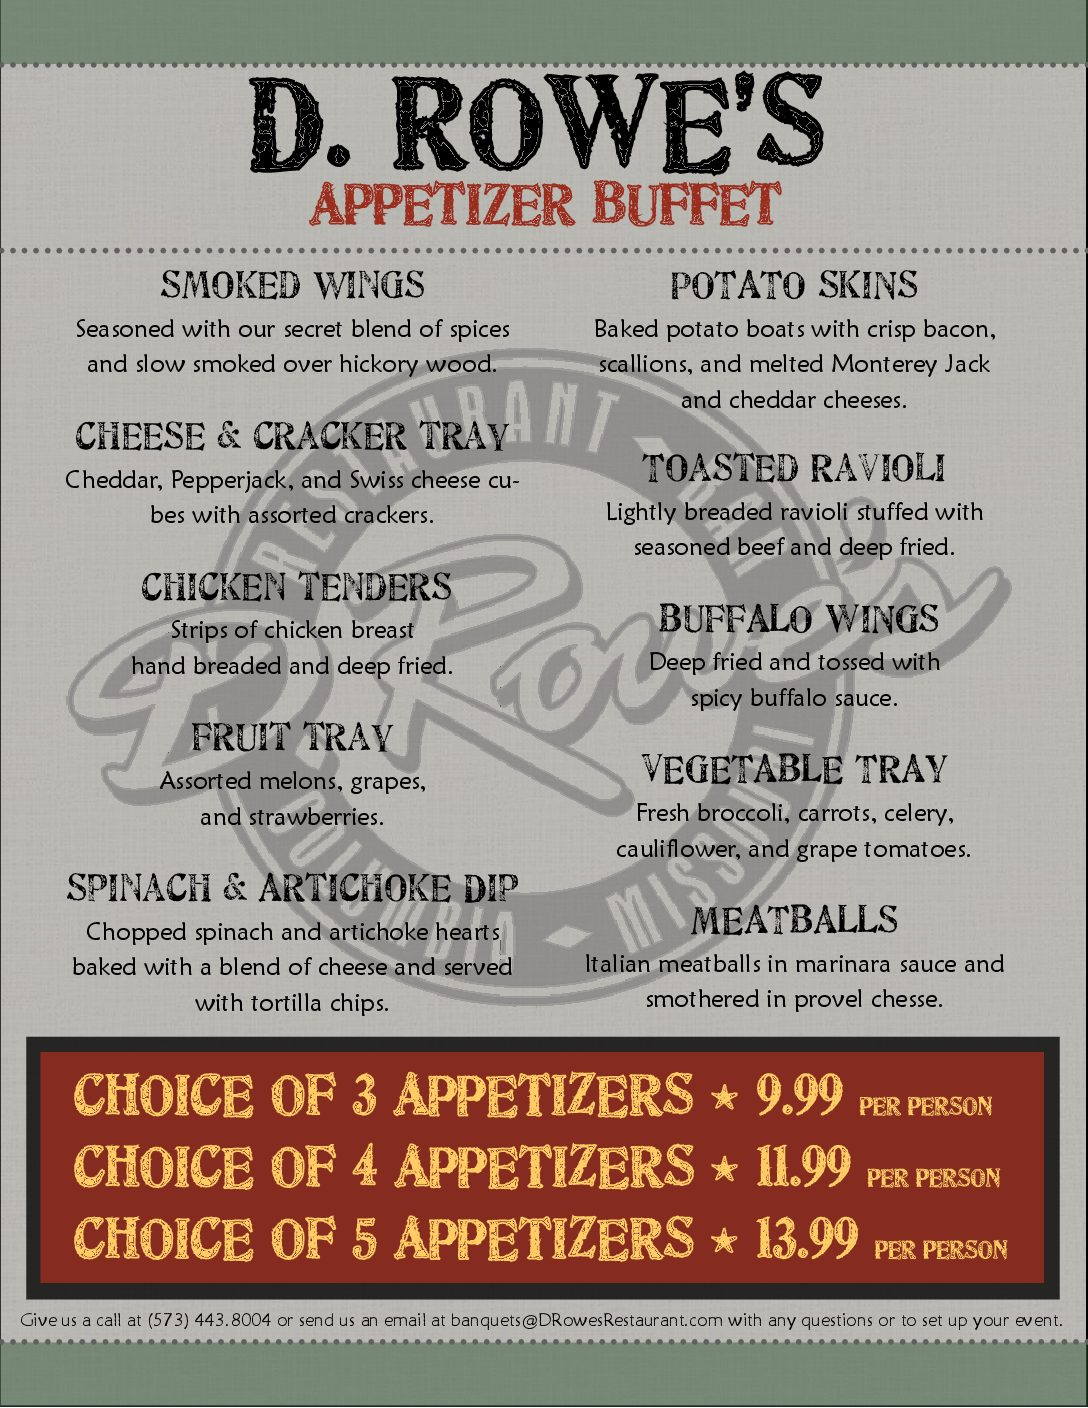 Appetizer Buffet menu